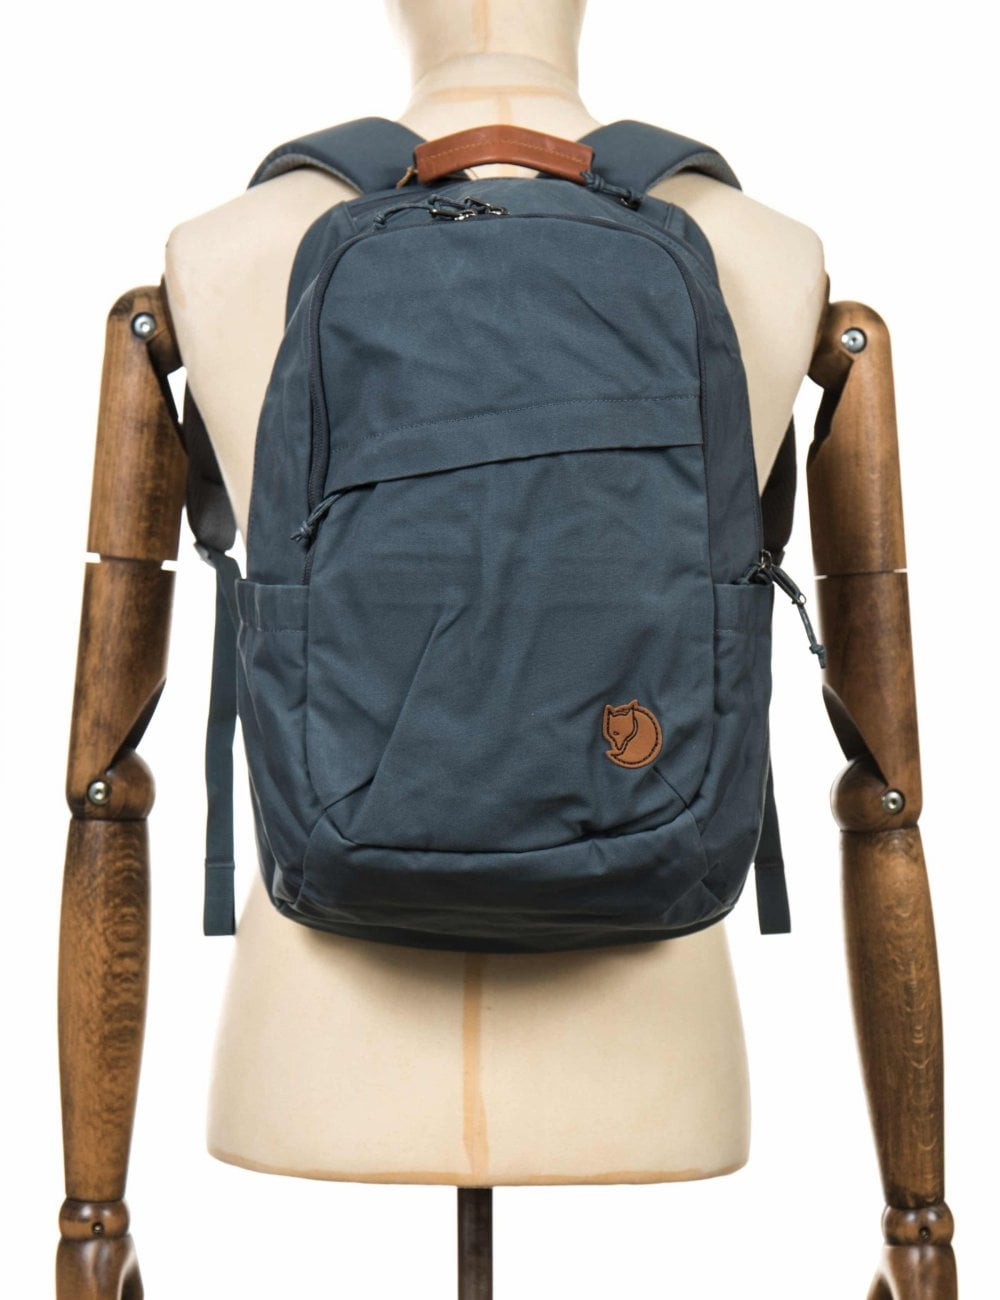 5e49b4465 Fjallraven Raven 20L Backpack - Dusk - Accessories from Fat Buddha ...